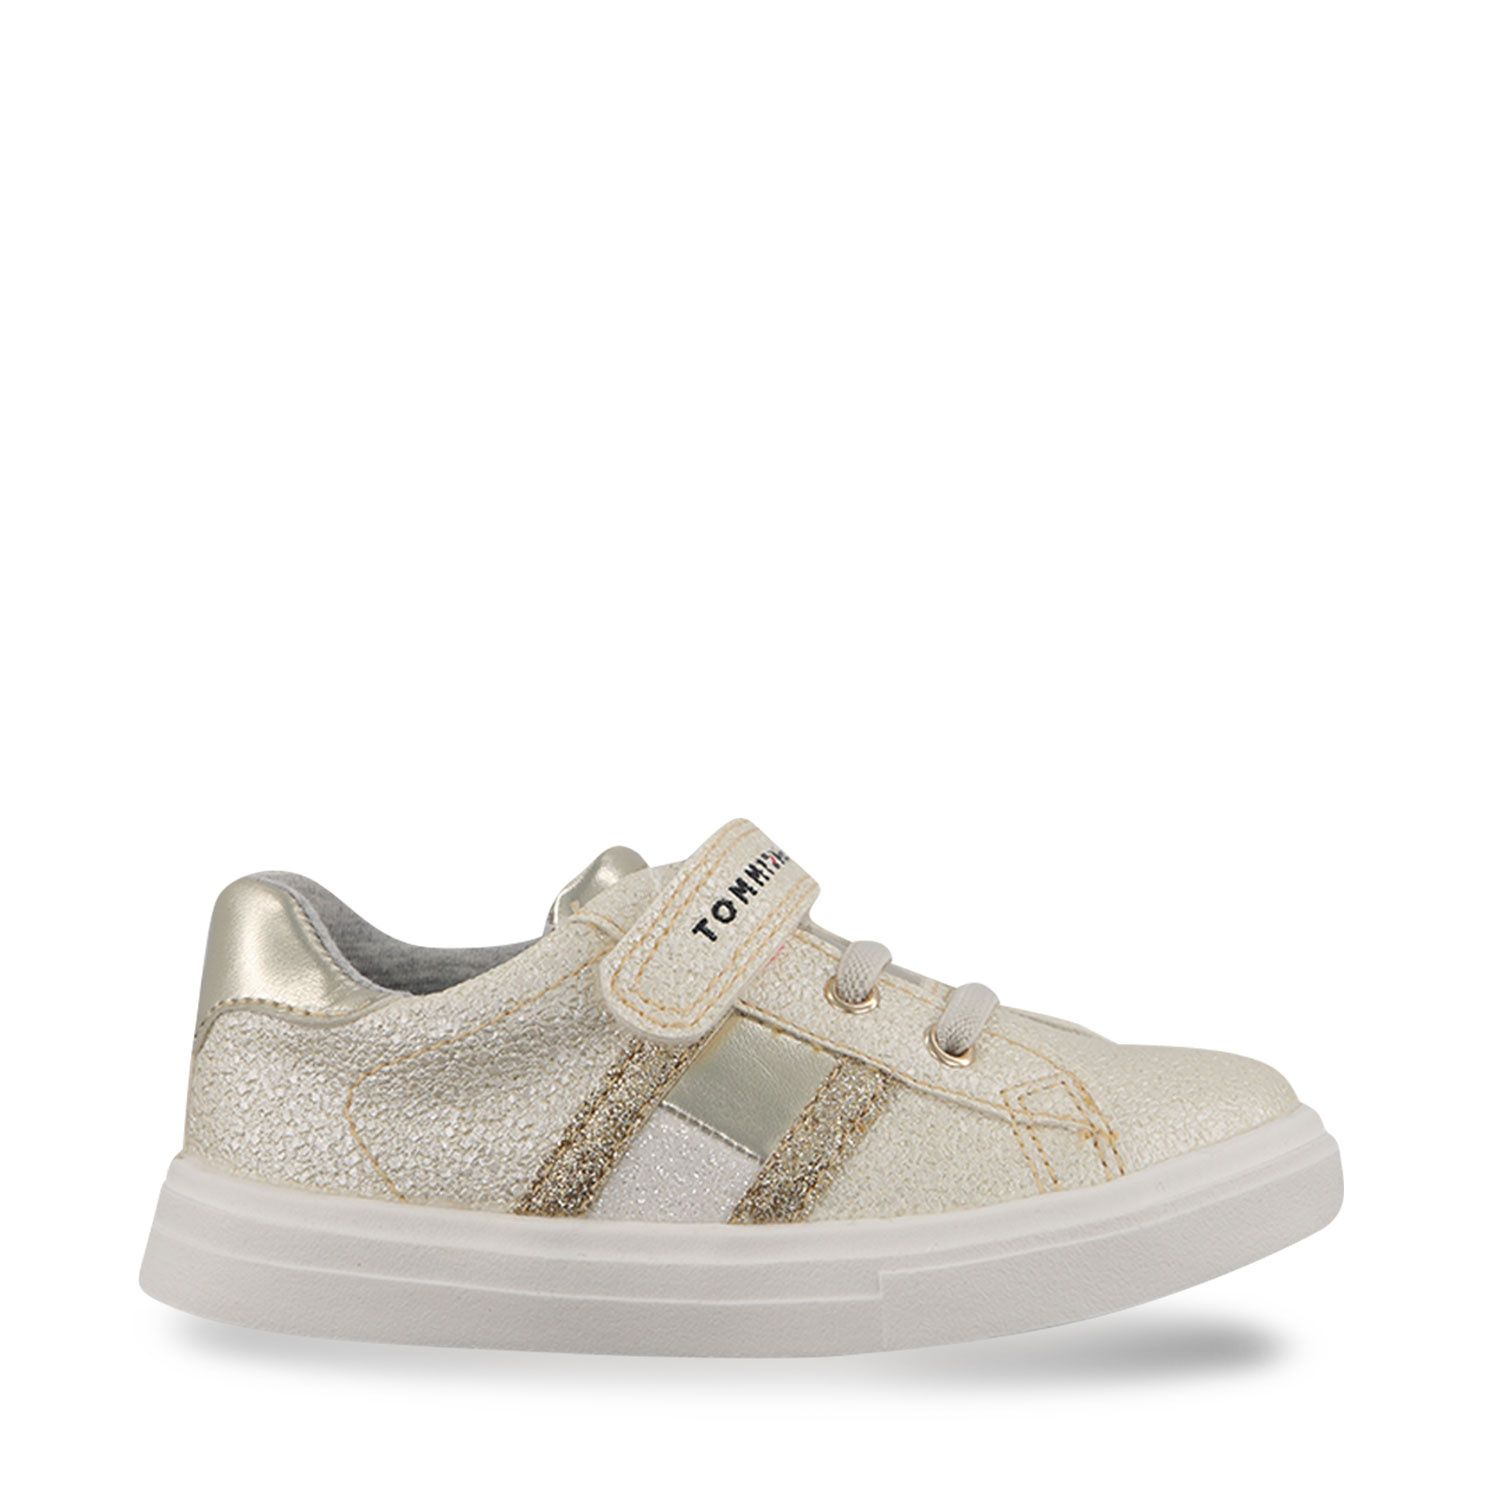 Picture of Tommy Hilfiger 31014 kids sneakers gold